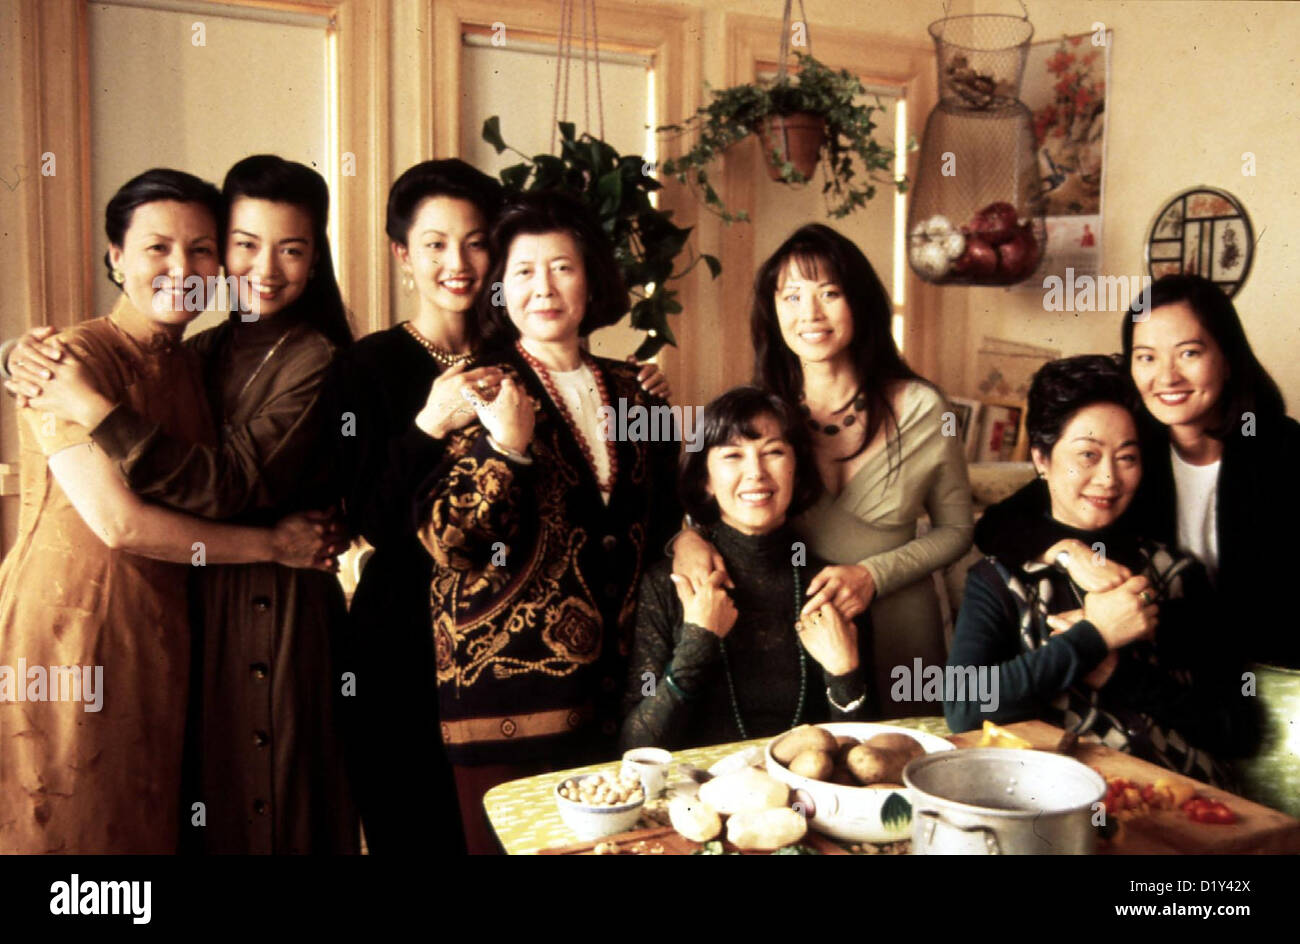 tsai chin stock photos tsai chin stock images  toechter des himmels joy luck club v l kieu chinh ming na wen